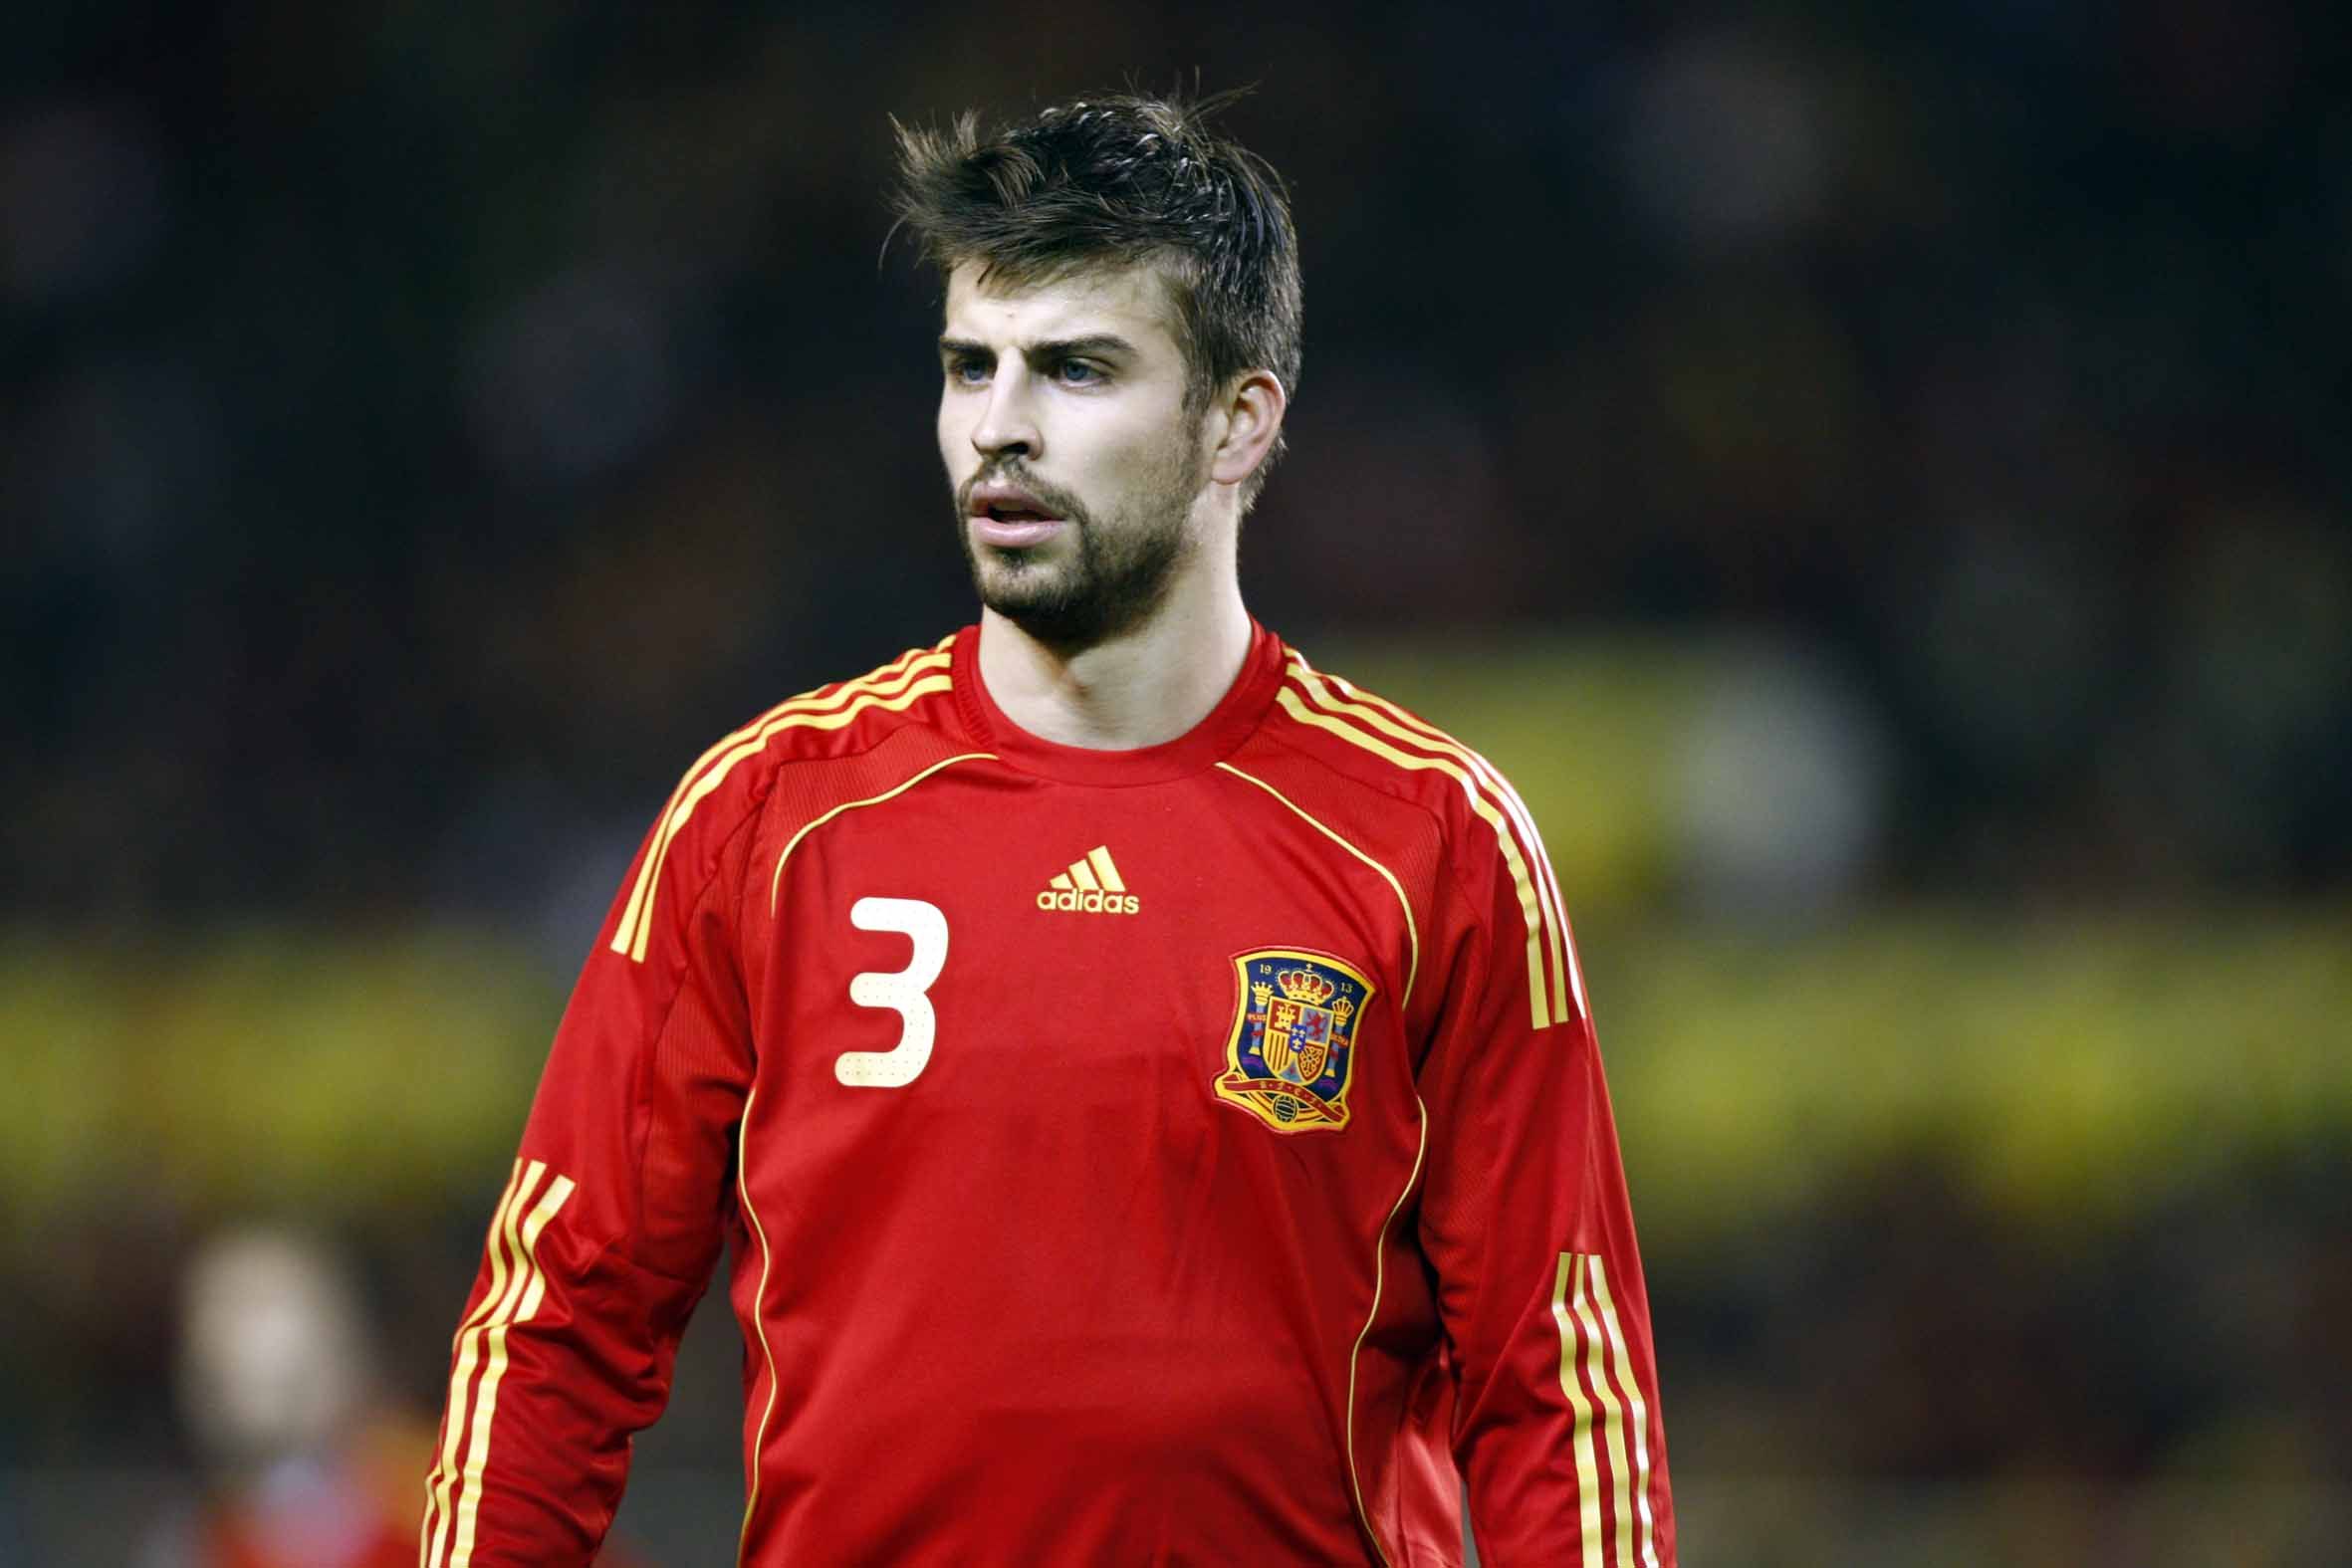 Gerard Pique Wallpapers Wallpaper Cave